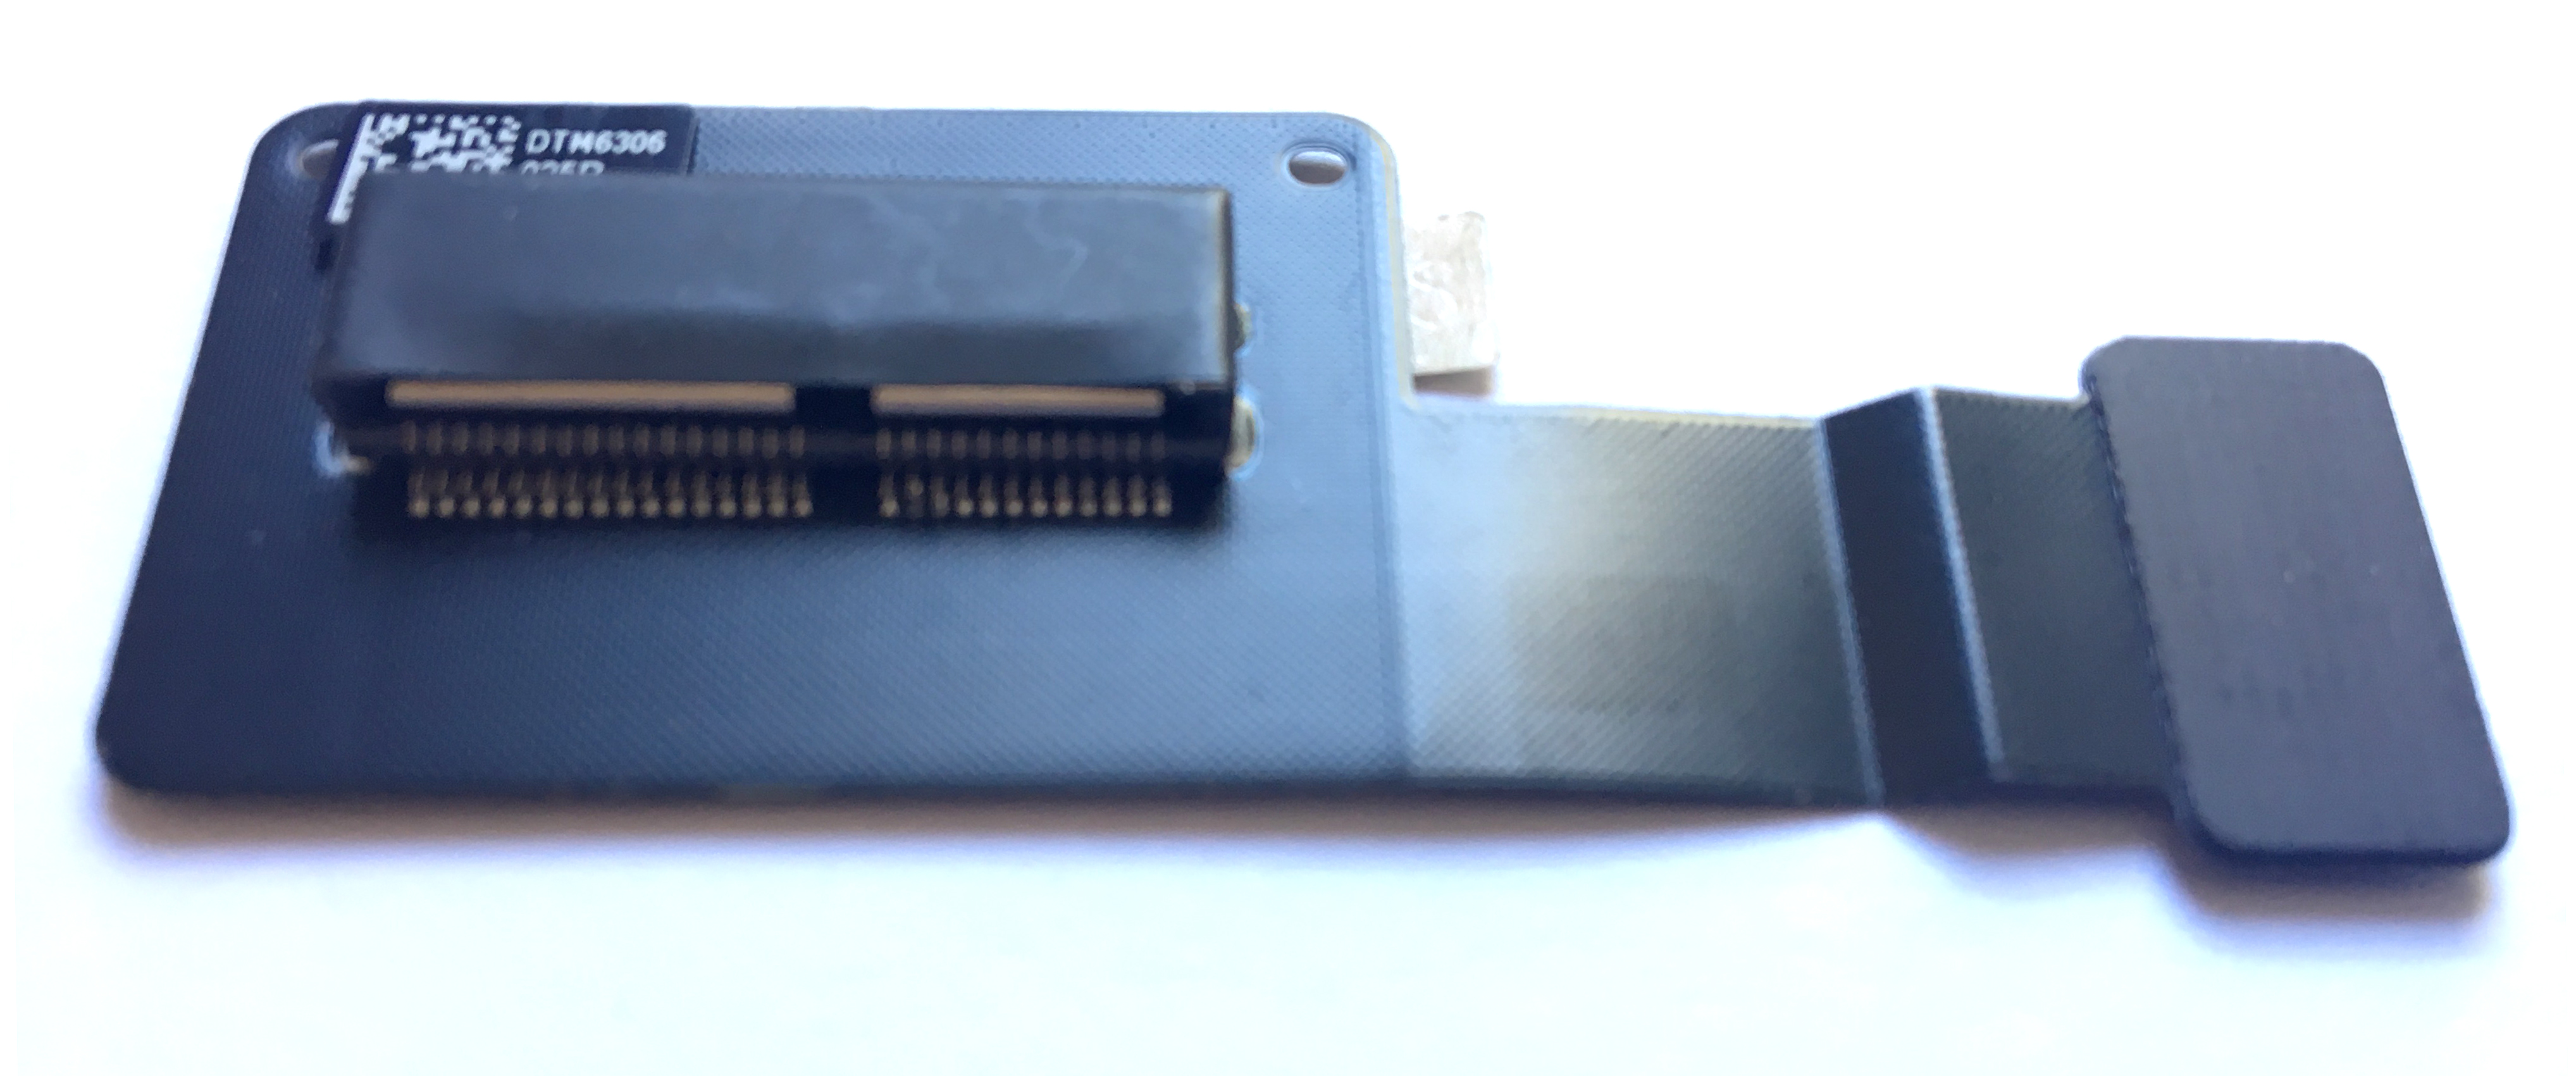 PCIe SSD Kabel for Mac Mini 2014 - 821-00010-A